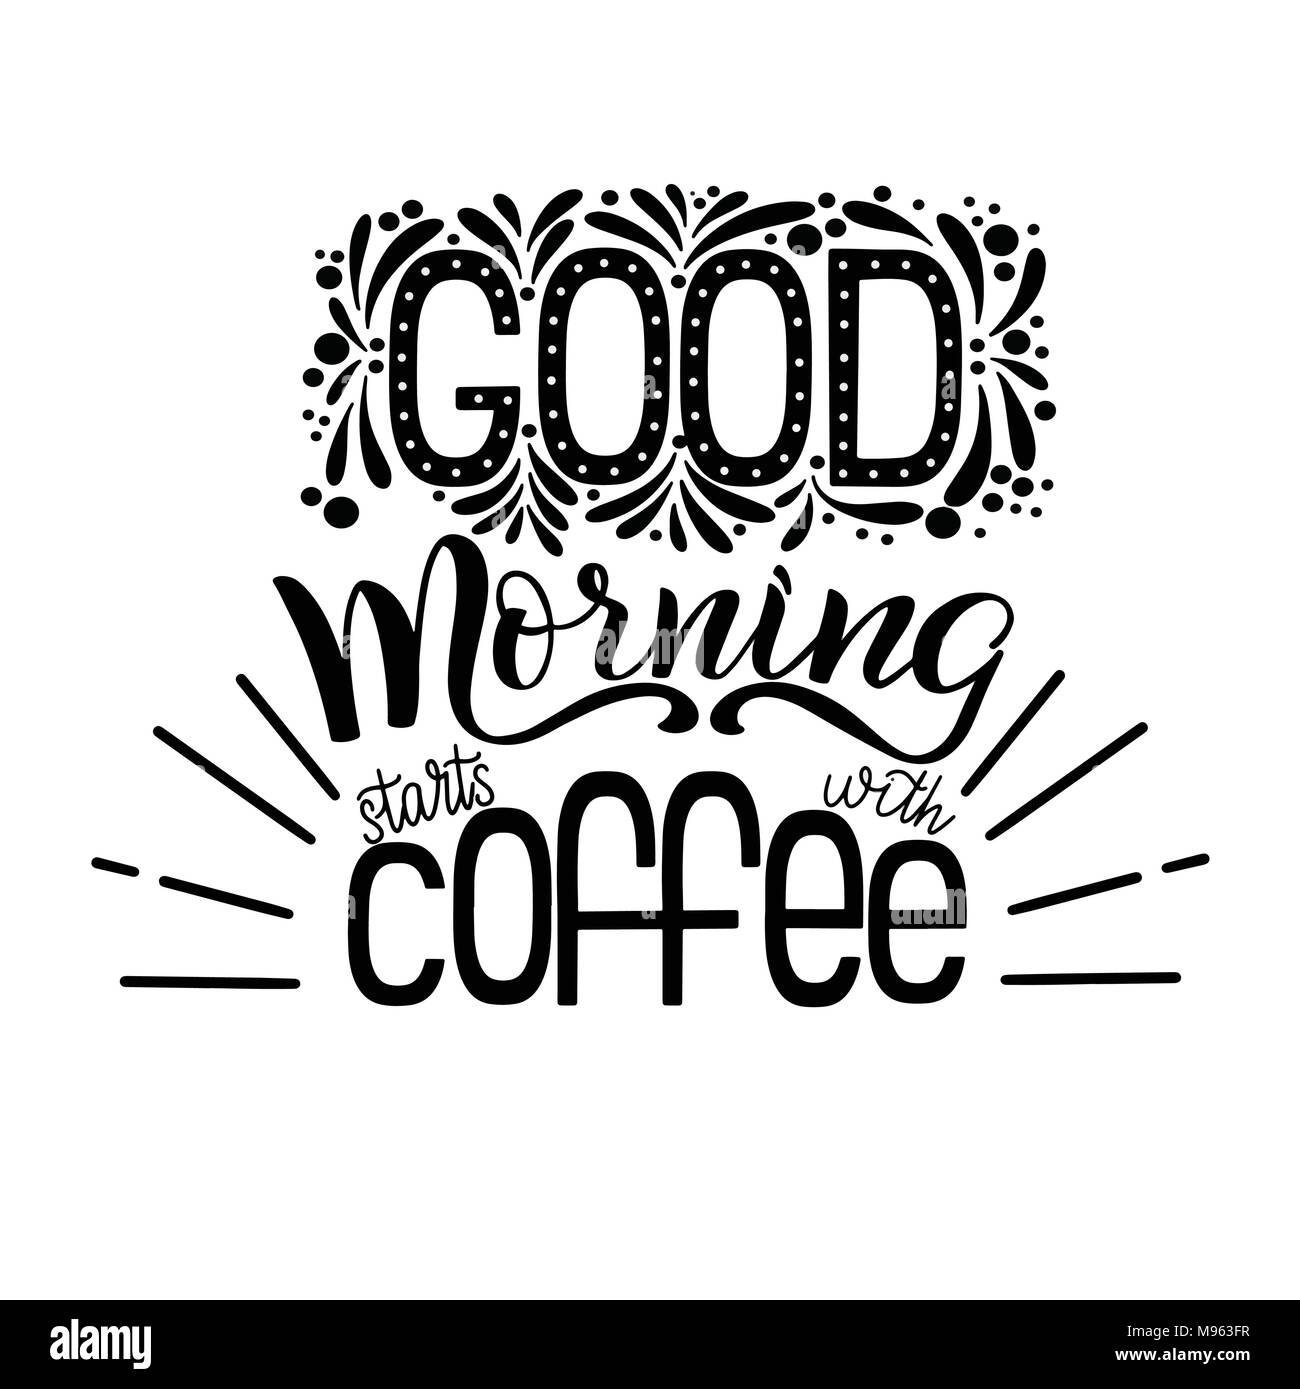 Lettering Good Morning Starts With Coffee Calligraphic Hand Drawn Sign Coffee Quote Text For Prints And Posters Menu Design Greeting Cards Vector Illustration Stock Vector Image Art Alamy